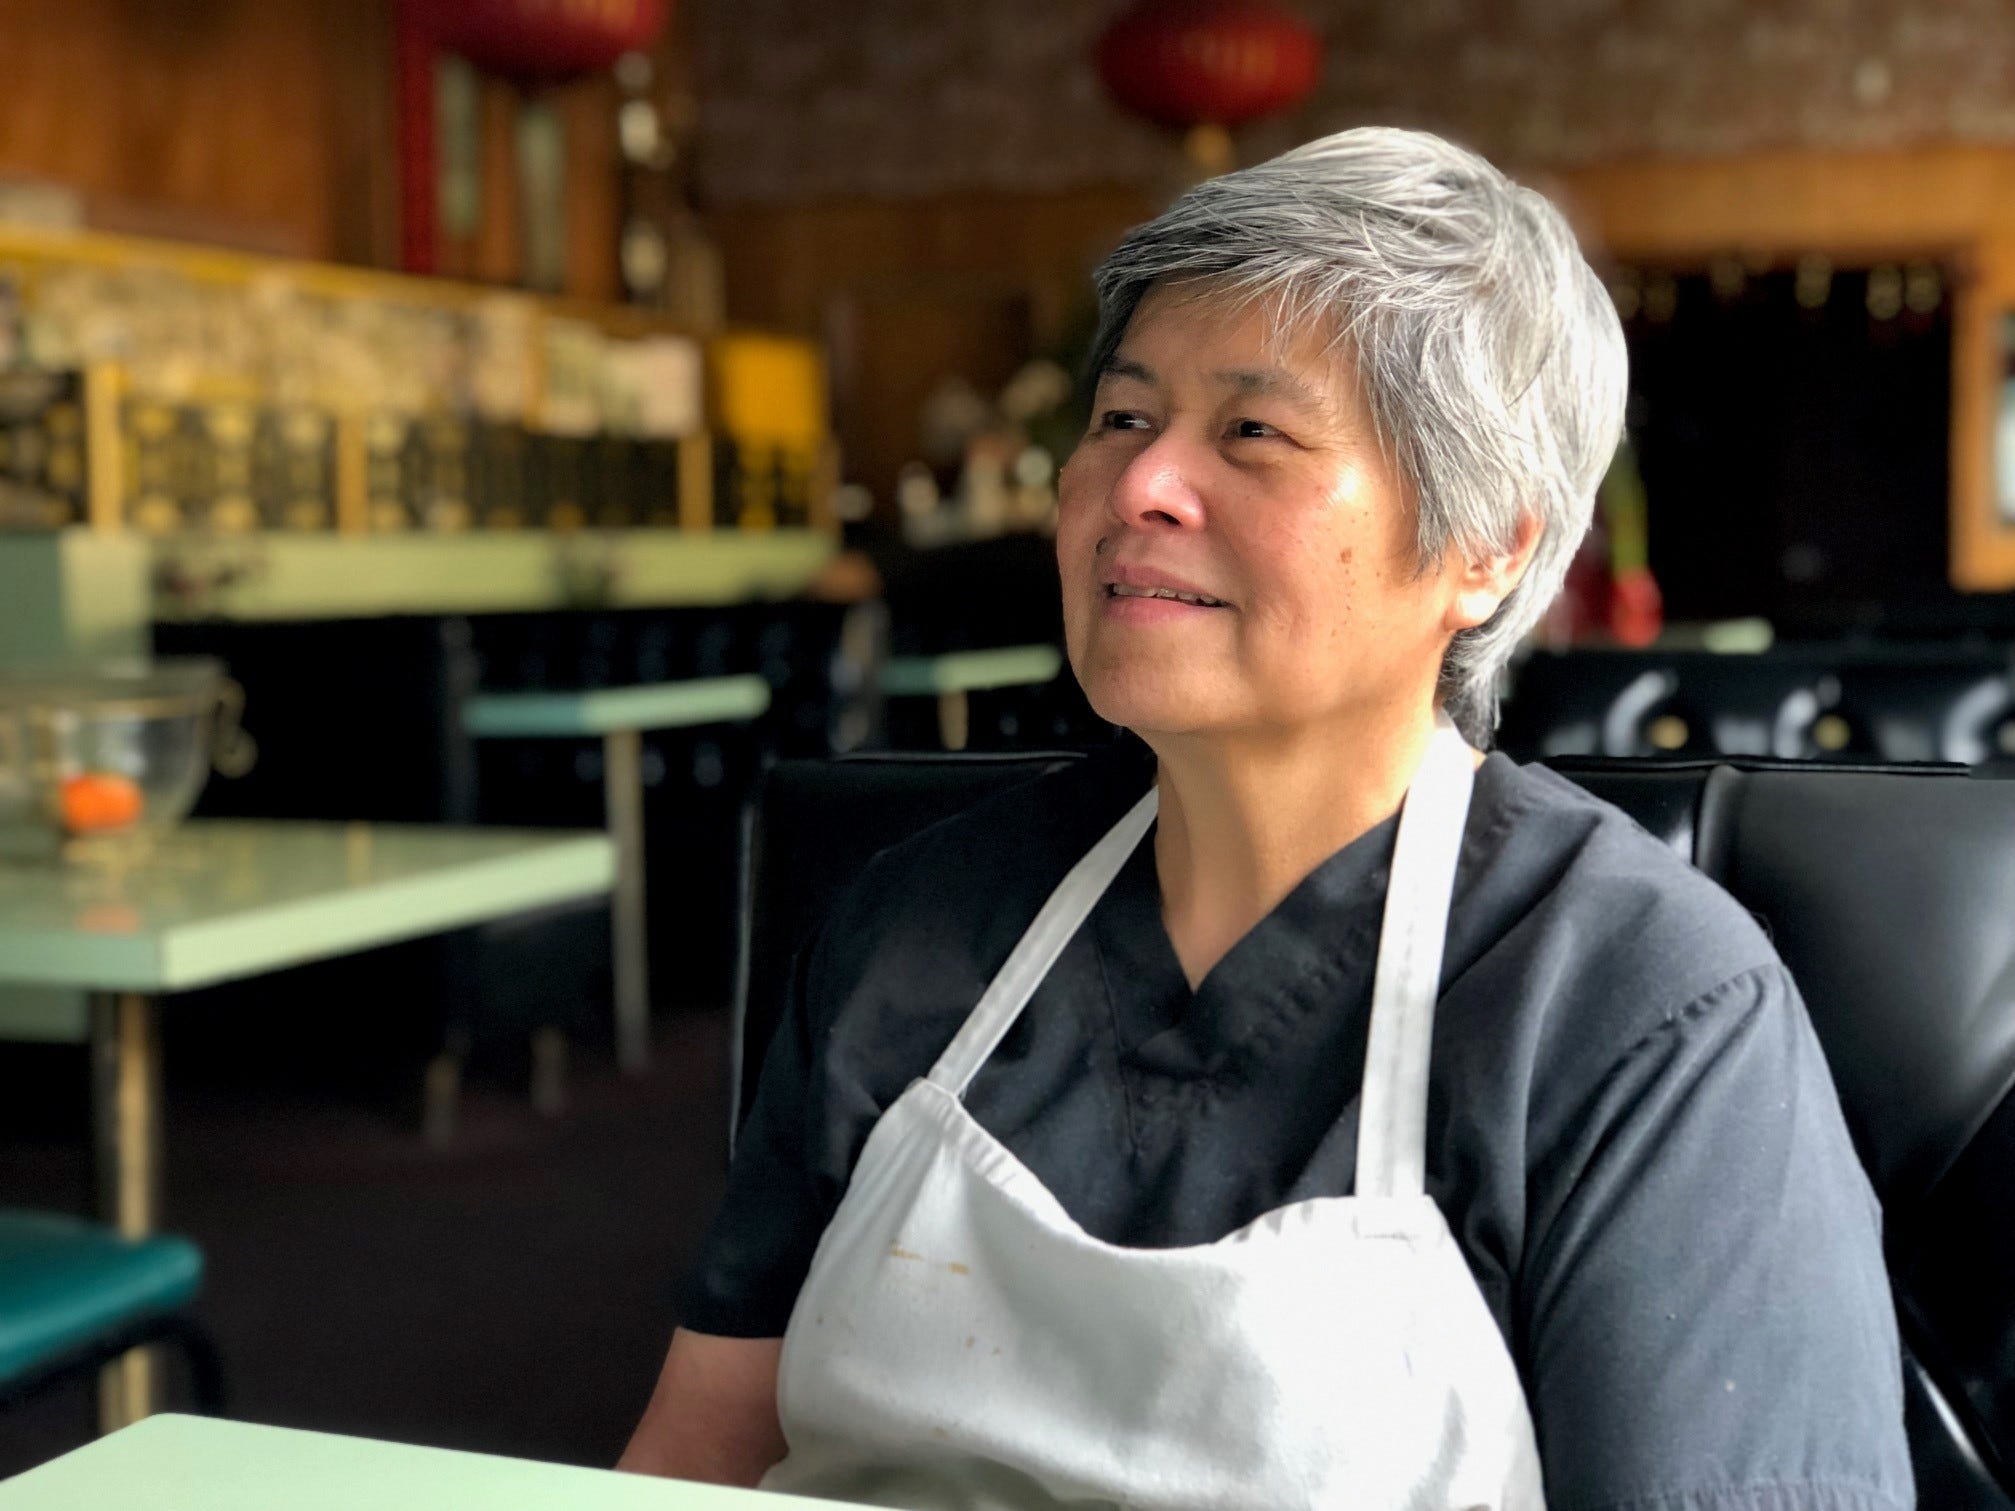 Jeannie Lim strikes a pensive pose in the dining room of her family's Chinese and American restaurant.